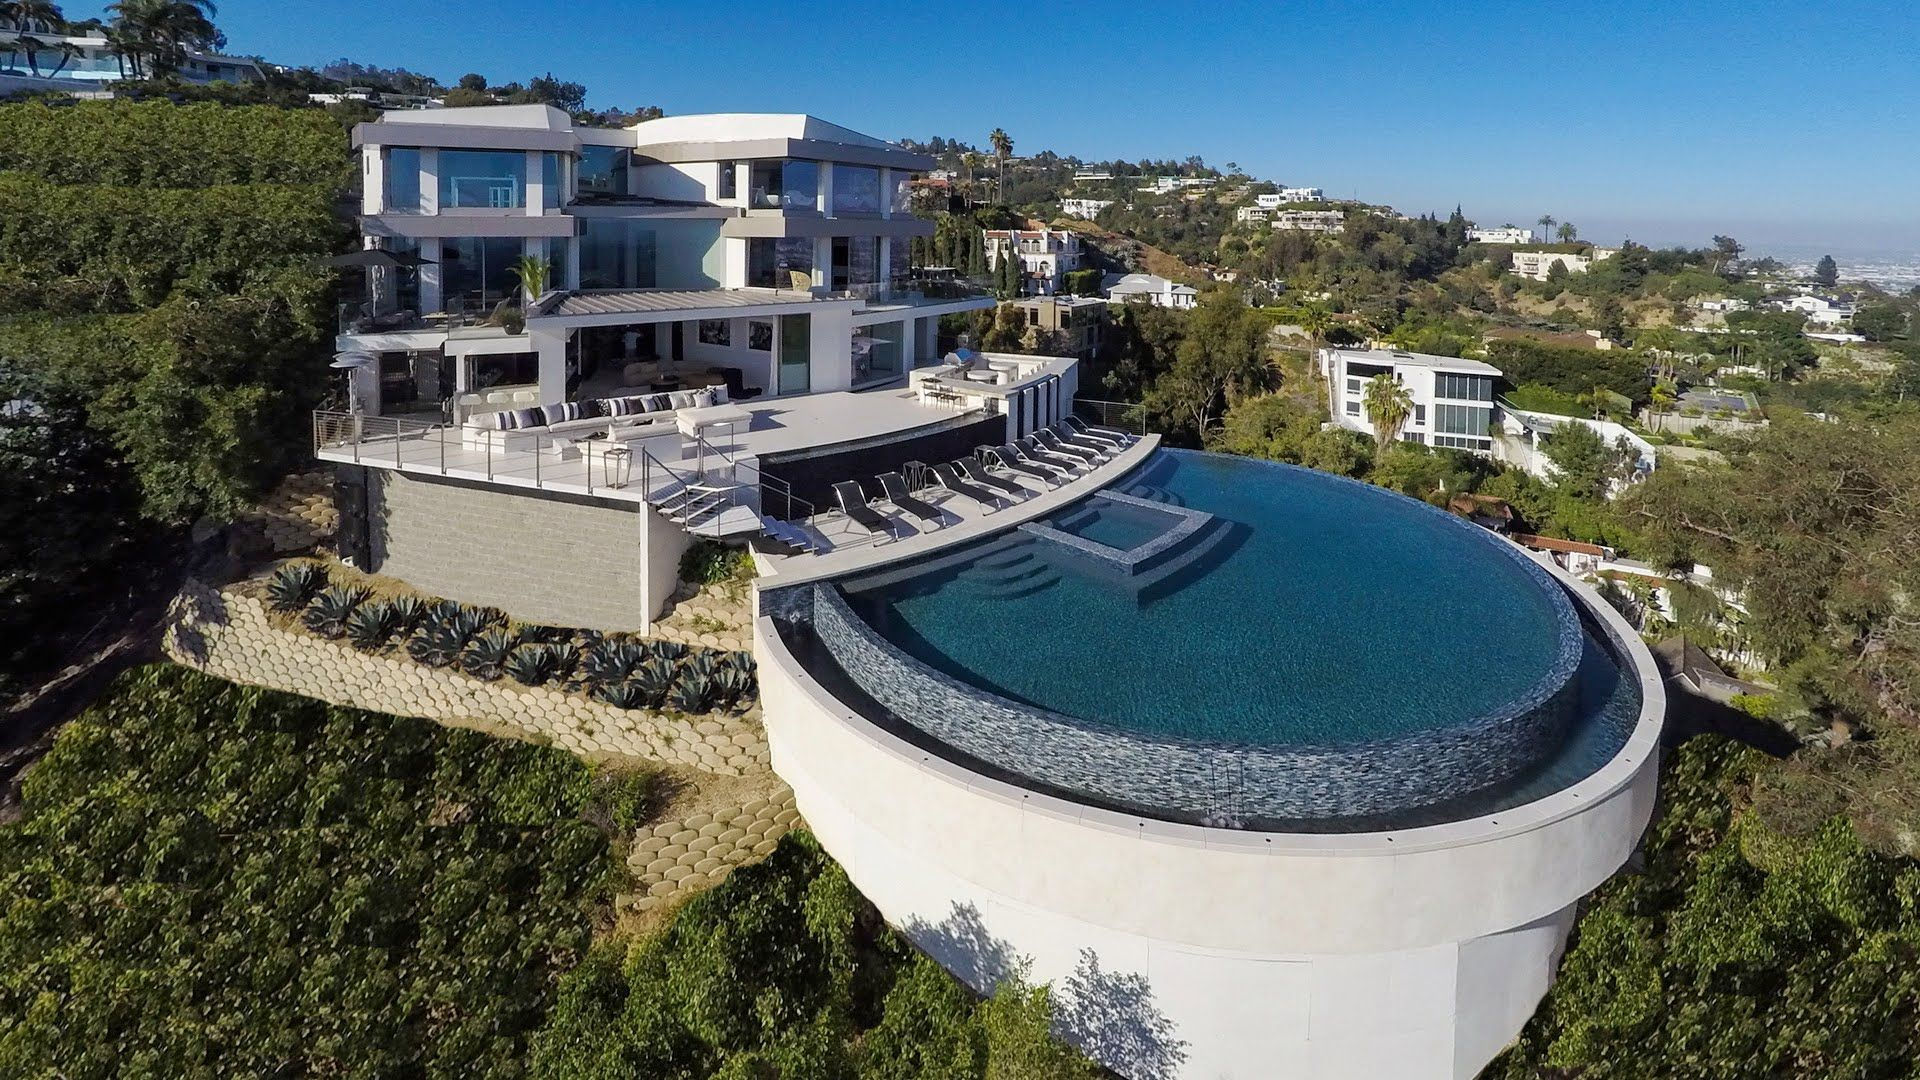 5 Amazing Luxury Hilltop Houses That Will Blow Your Mind 1